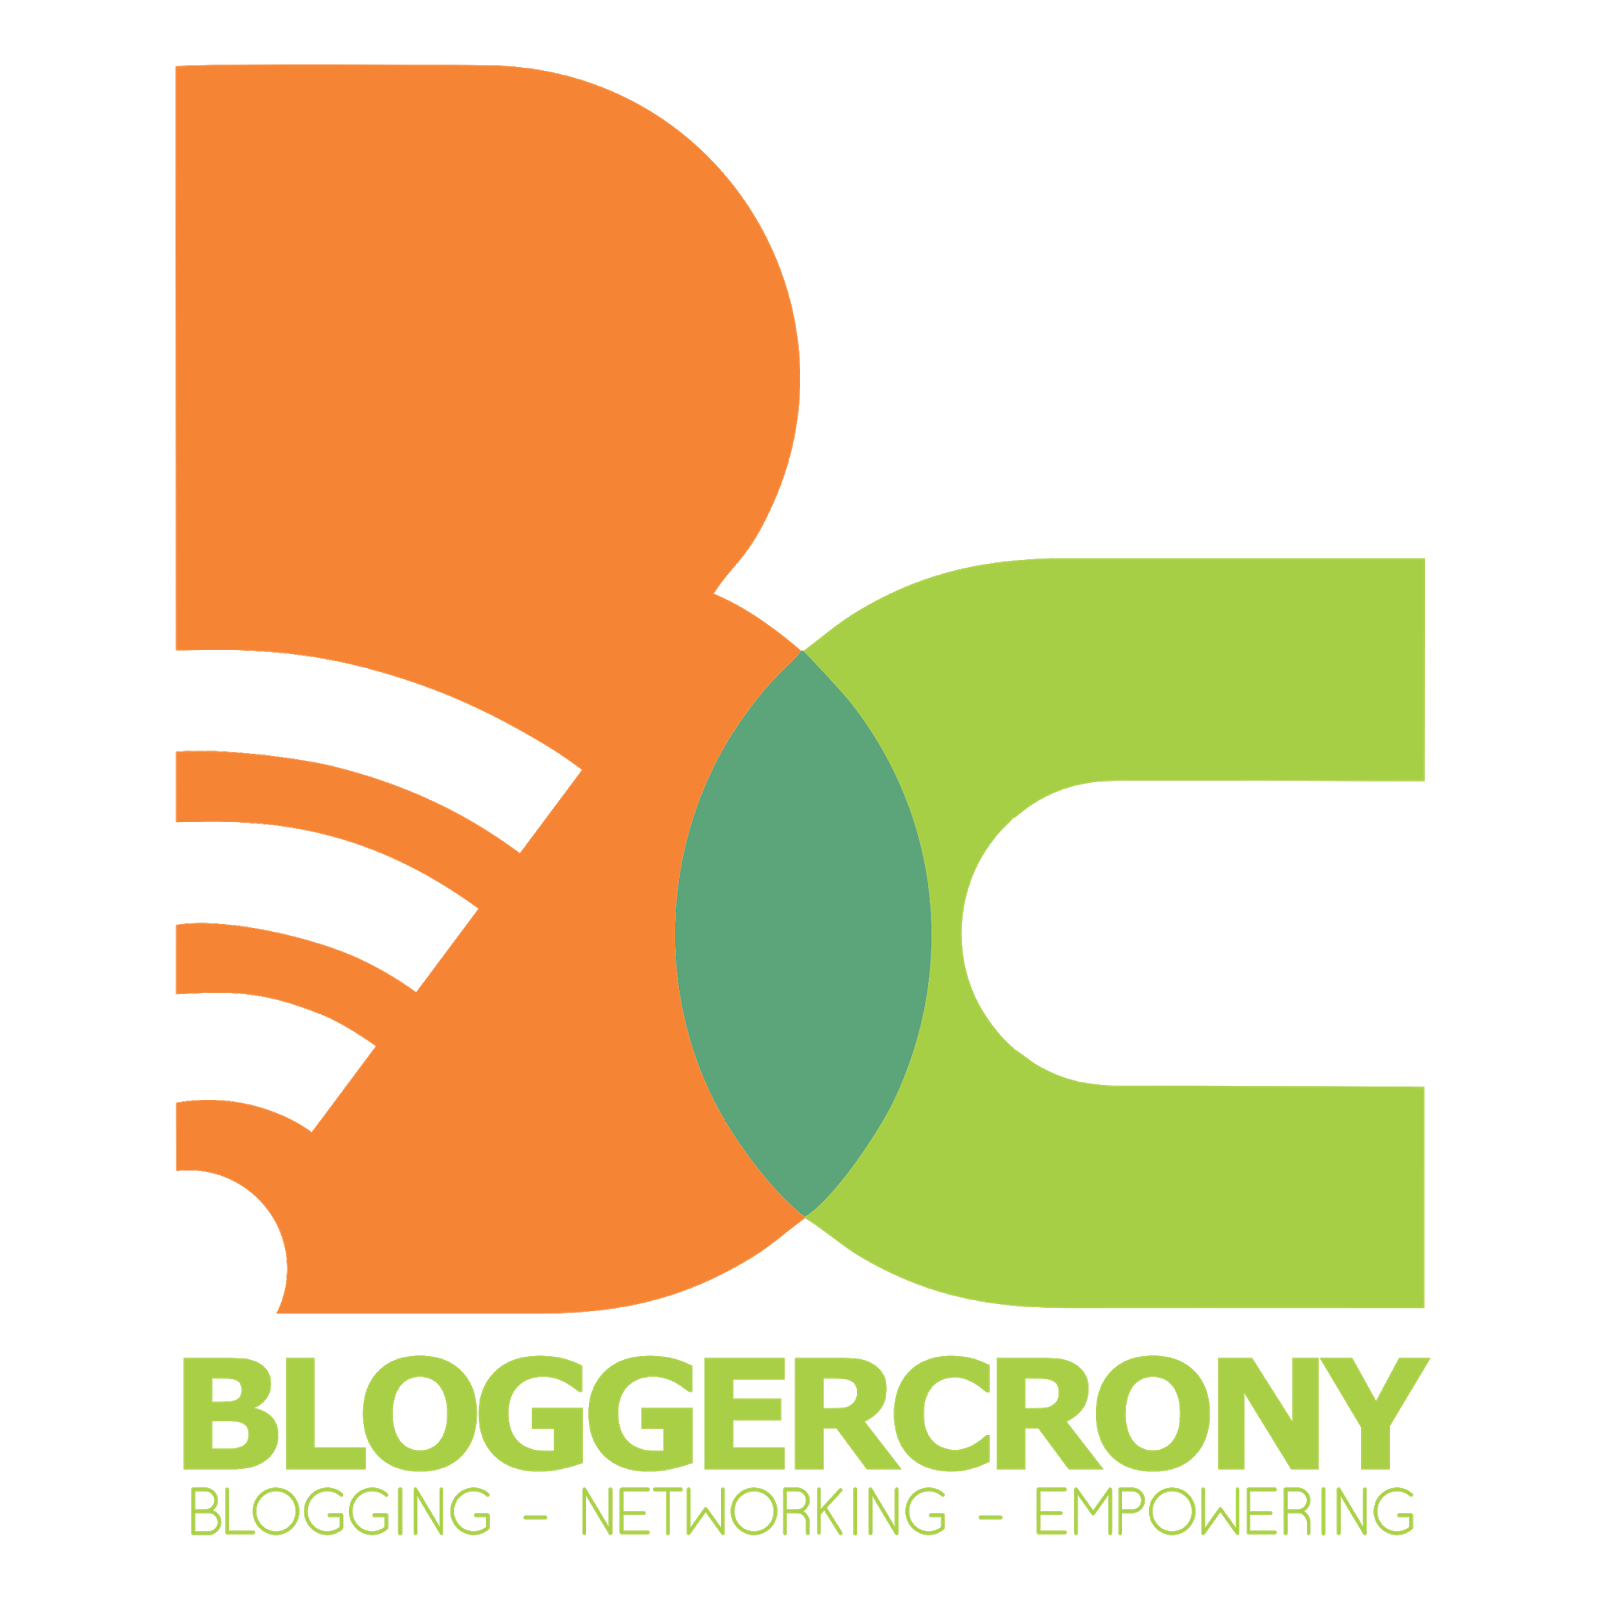 co-founder komunitas Blogggercrony Indonesia